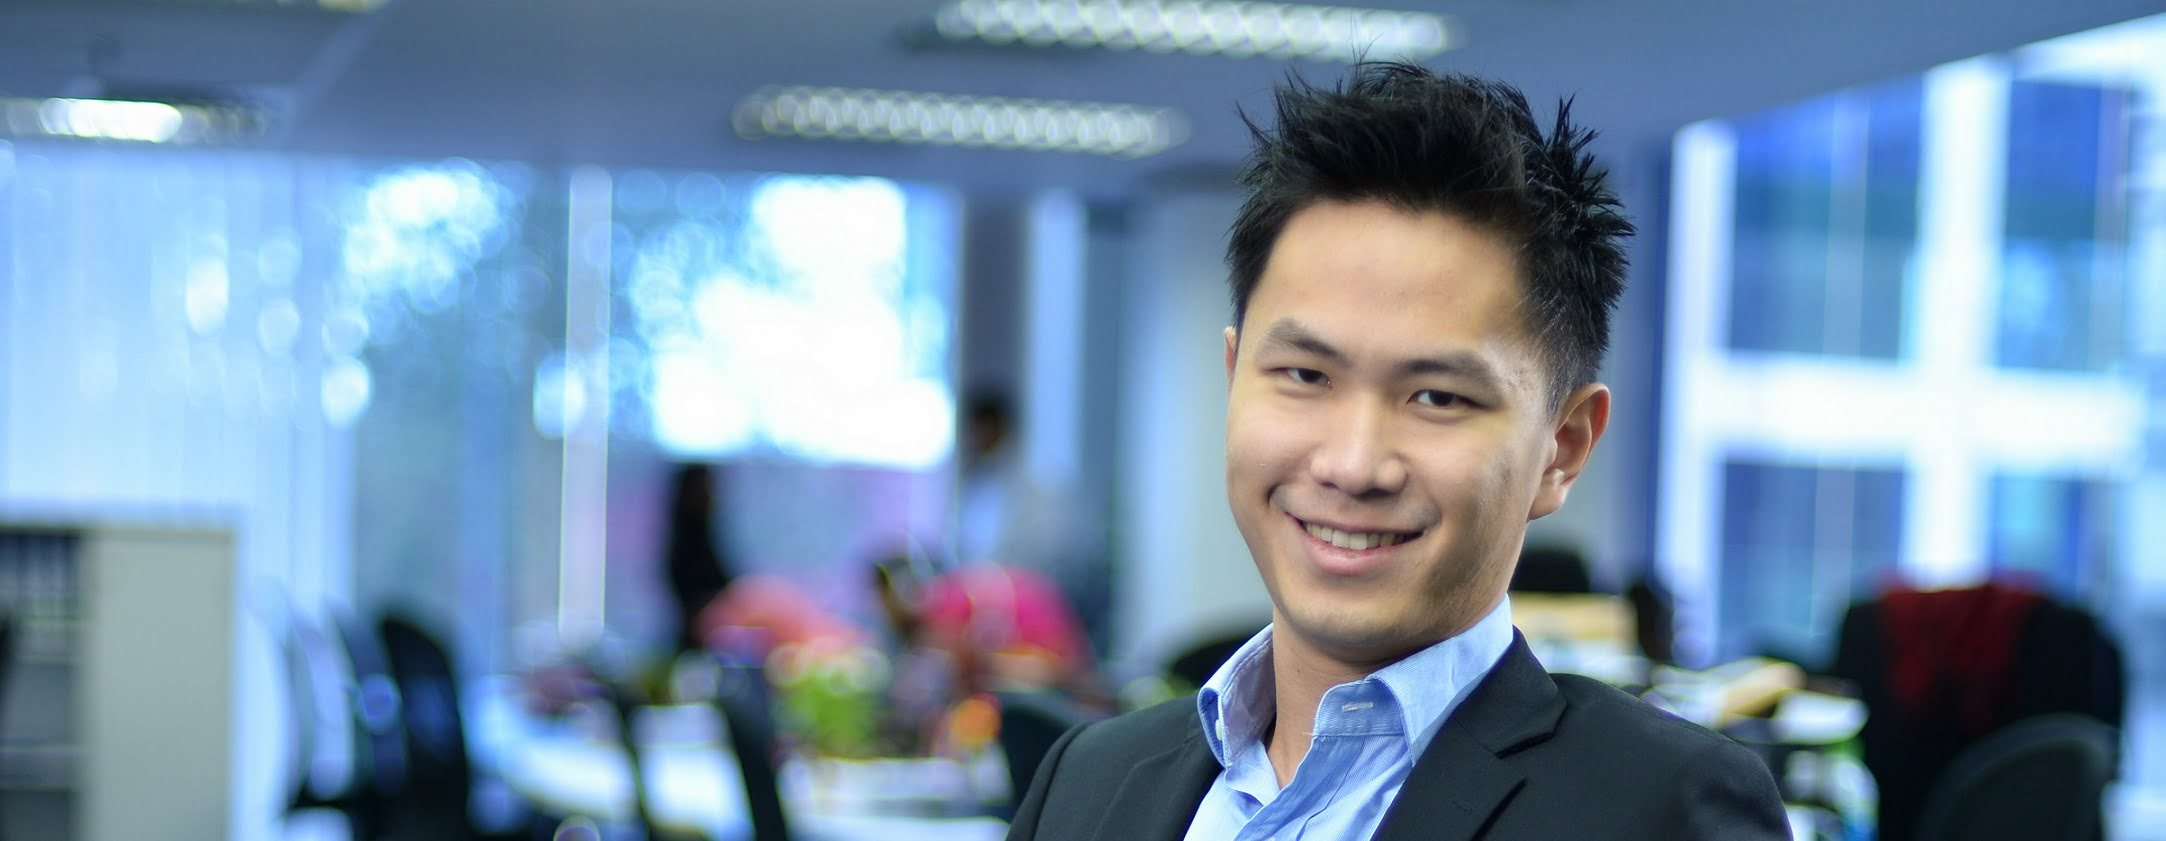 iMoney Aims To Take Pole Position In Fintech Industry